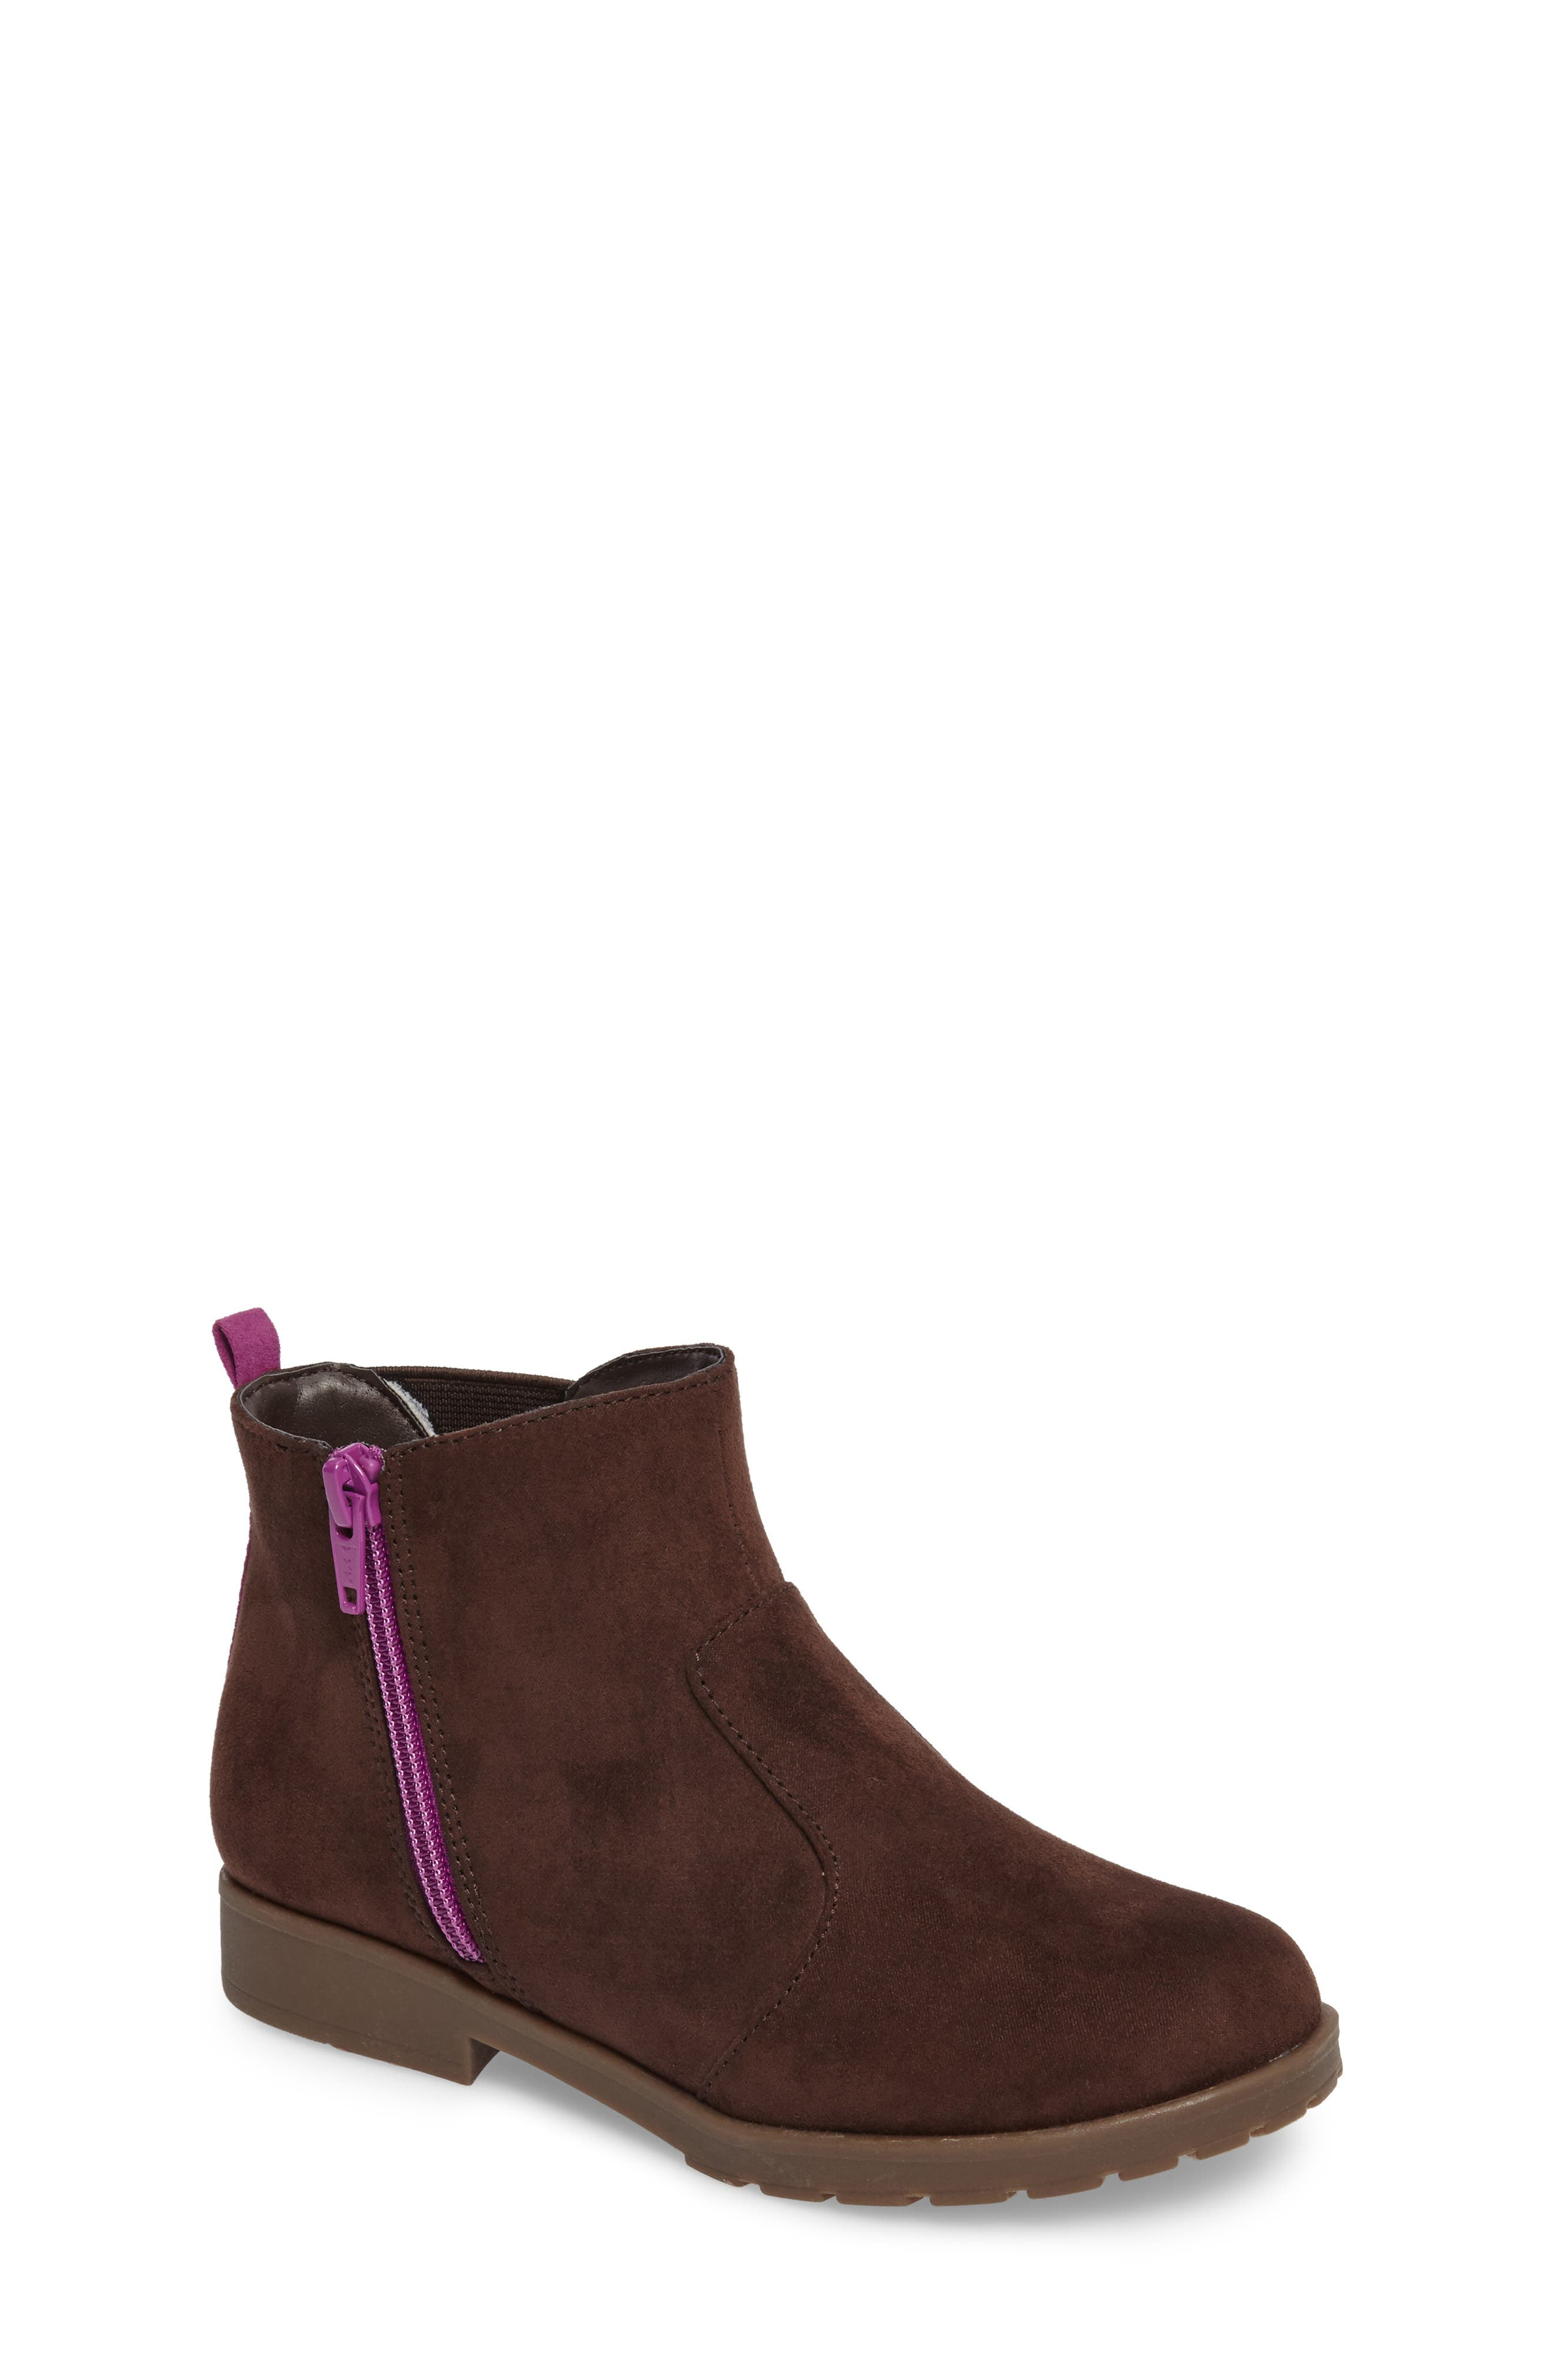 Lucy Zip Bootie,                             Main thumbnail 1, color,                             Chocolate